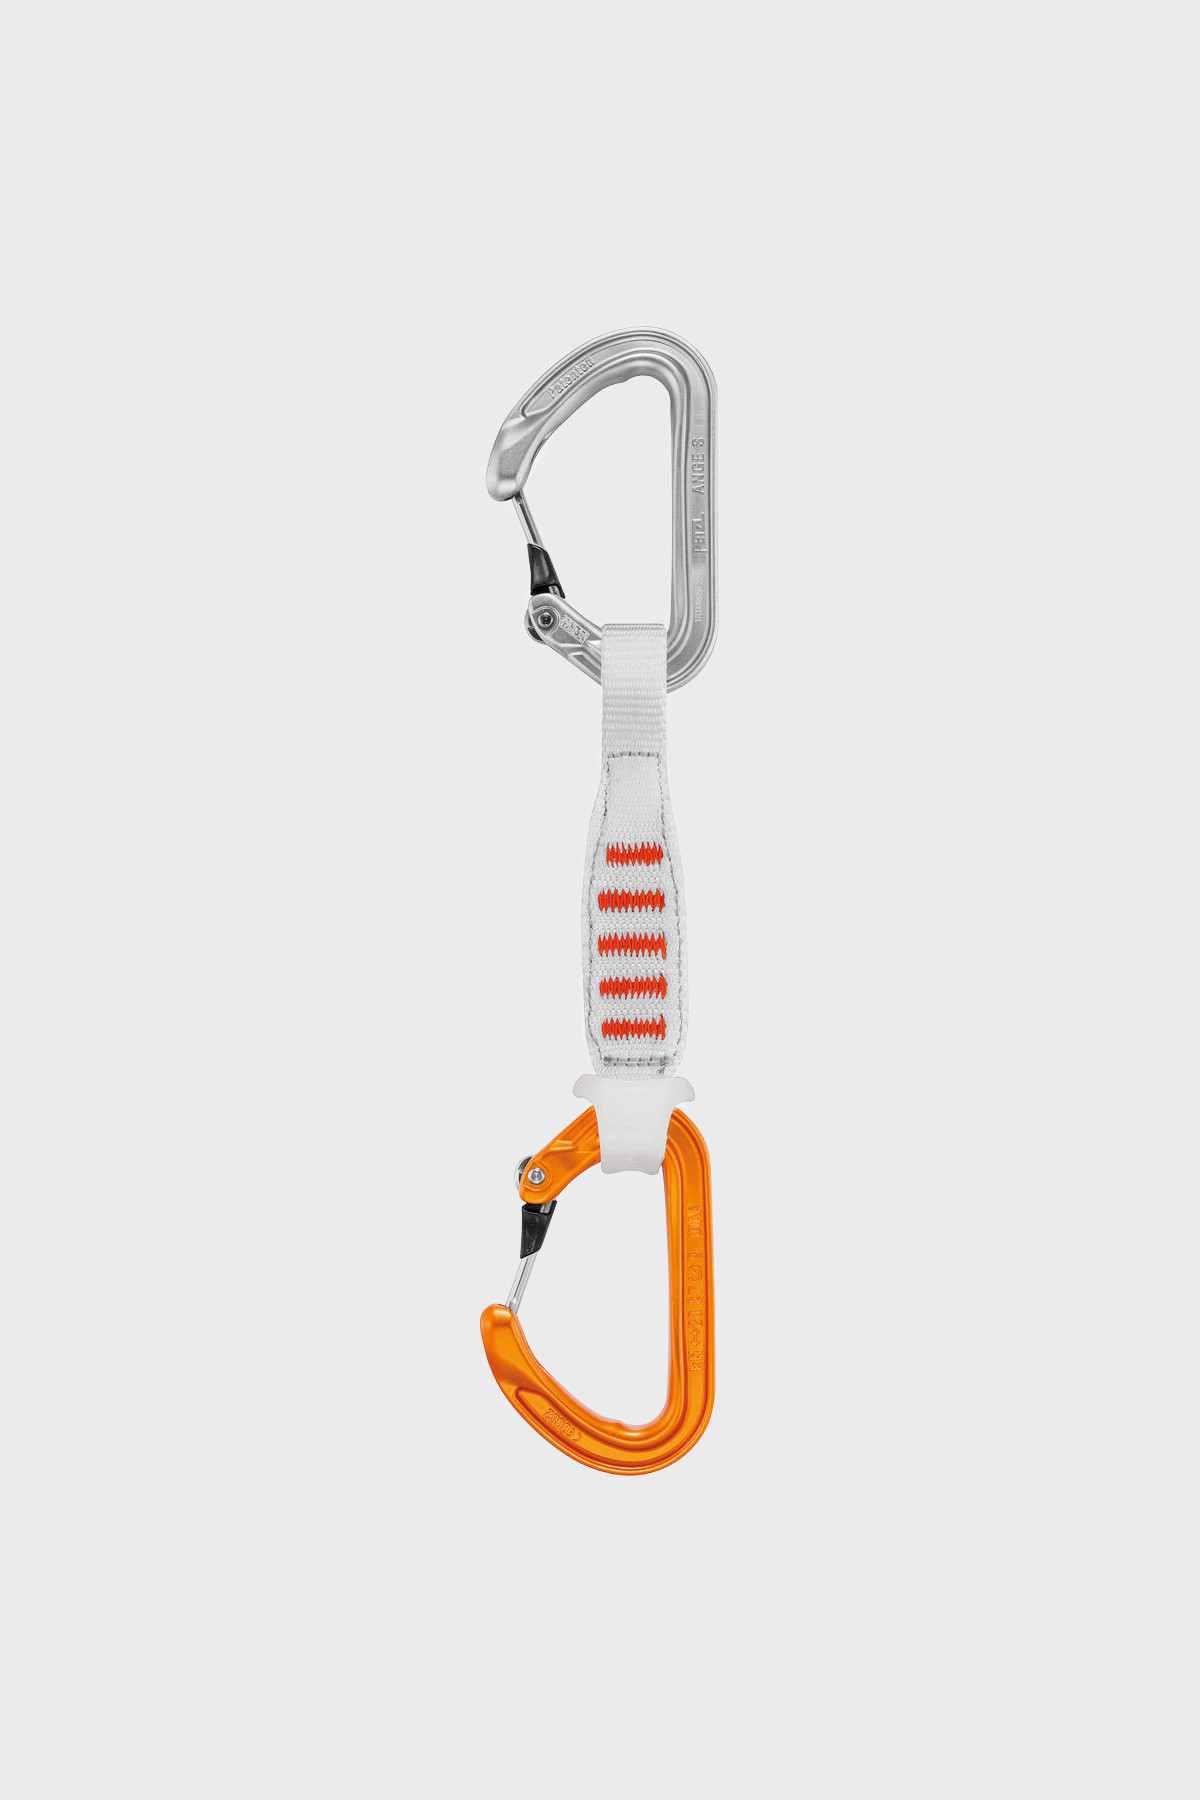 Petzl - Dégaine Ange Finesse 10 CM - Blanc Orange